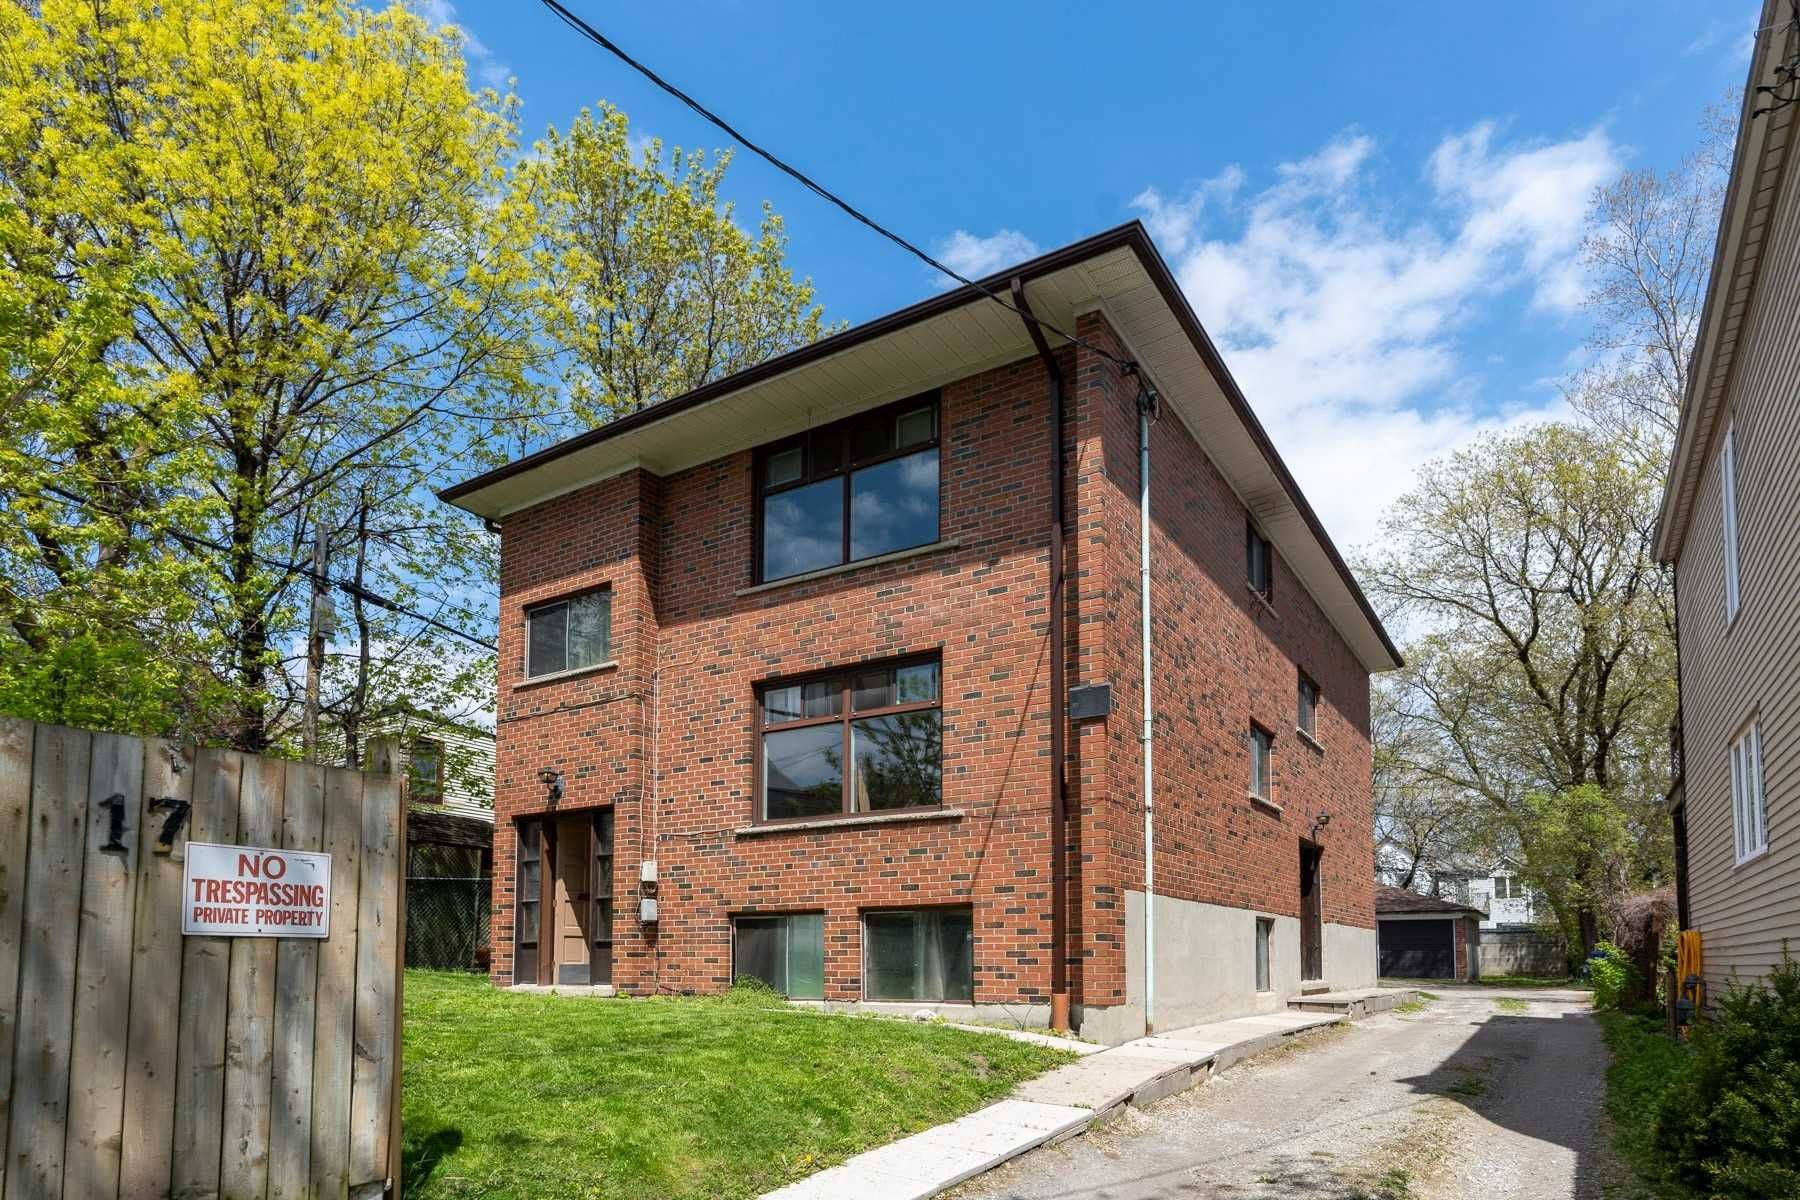 Main Photo: 17 Boothroyd Avenue in Toronto: Blake-Jones House (2-Storey) for sale (Toronto E01)  : MLS®# E4765250